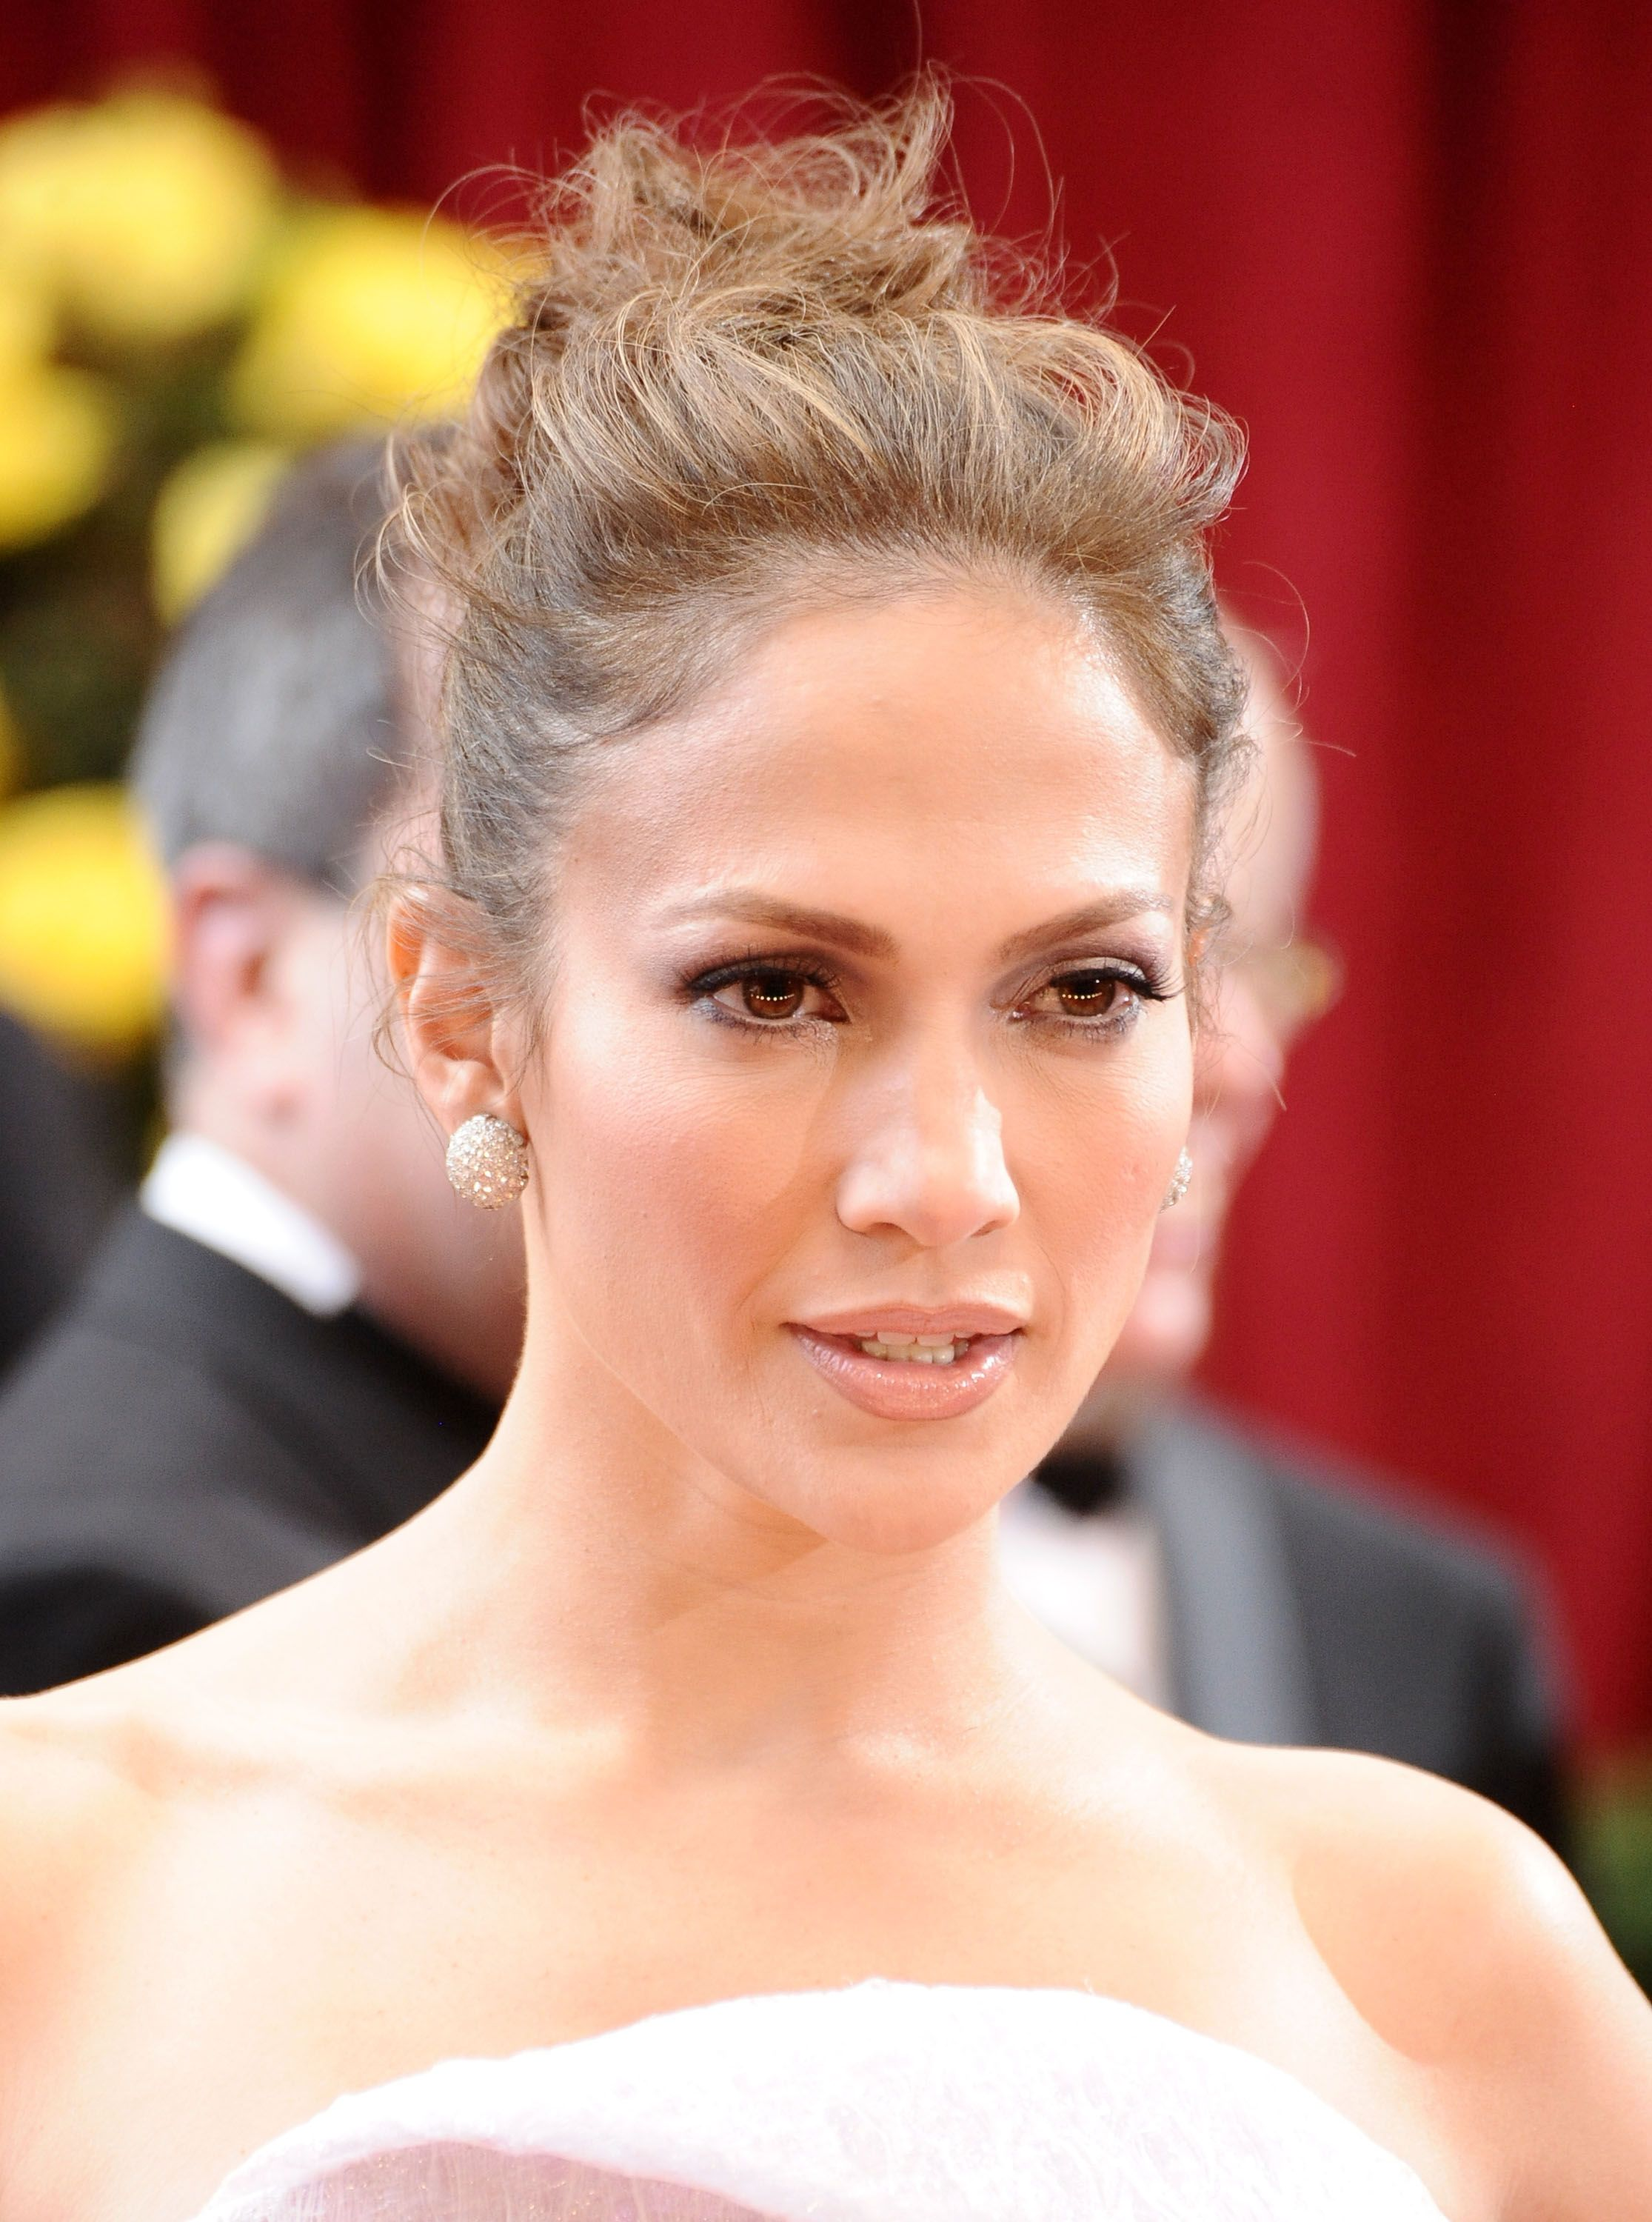 Actress Jennifer Lopez at the 82nd Annual Academy Awards held at the Kodak Theatre on March 7, 2010 in Hollywood, California. | Photo: Getty Images